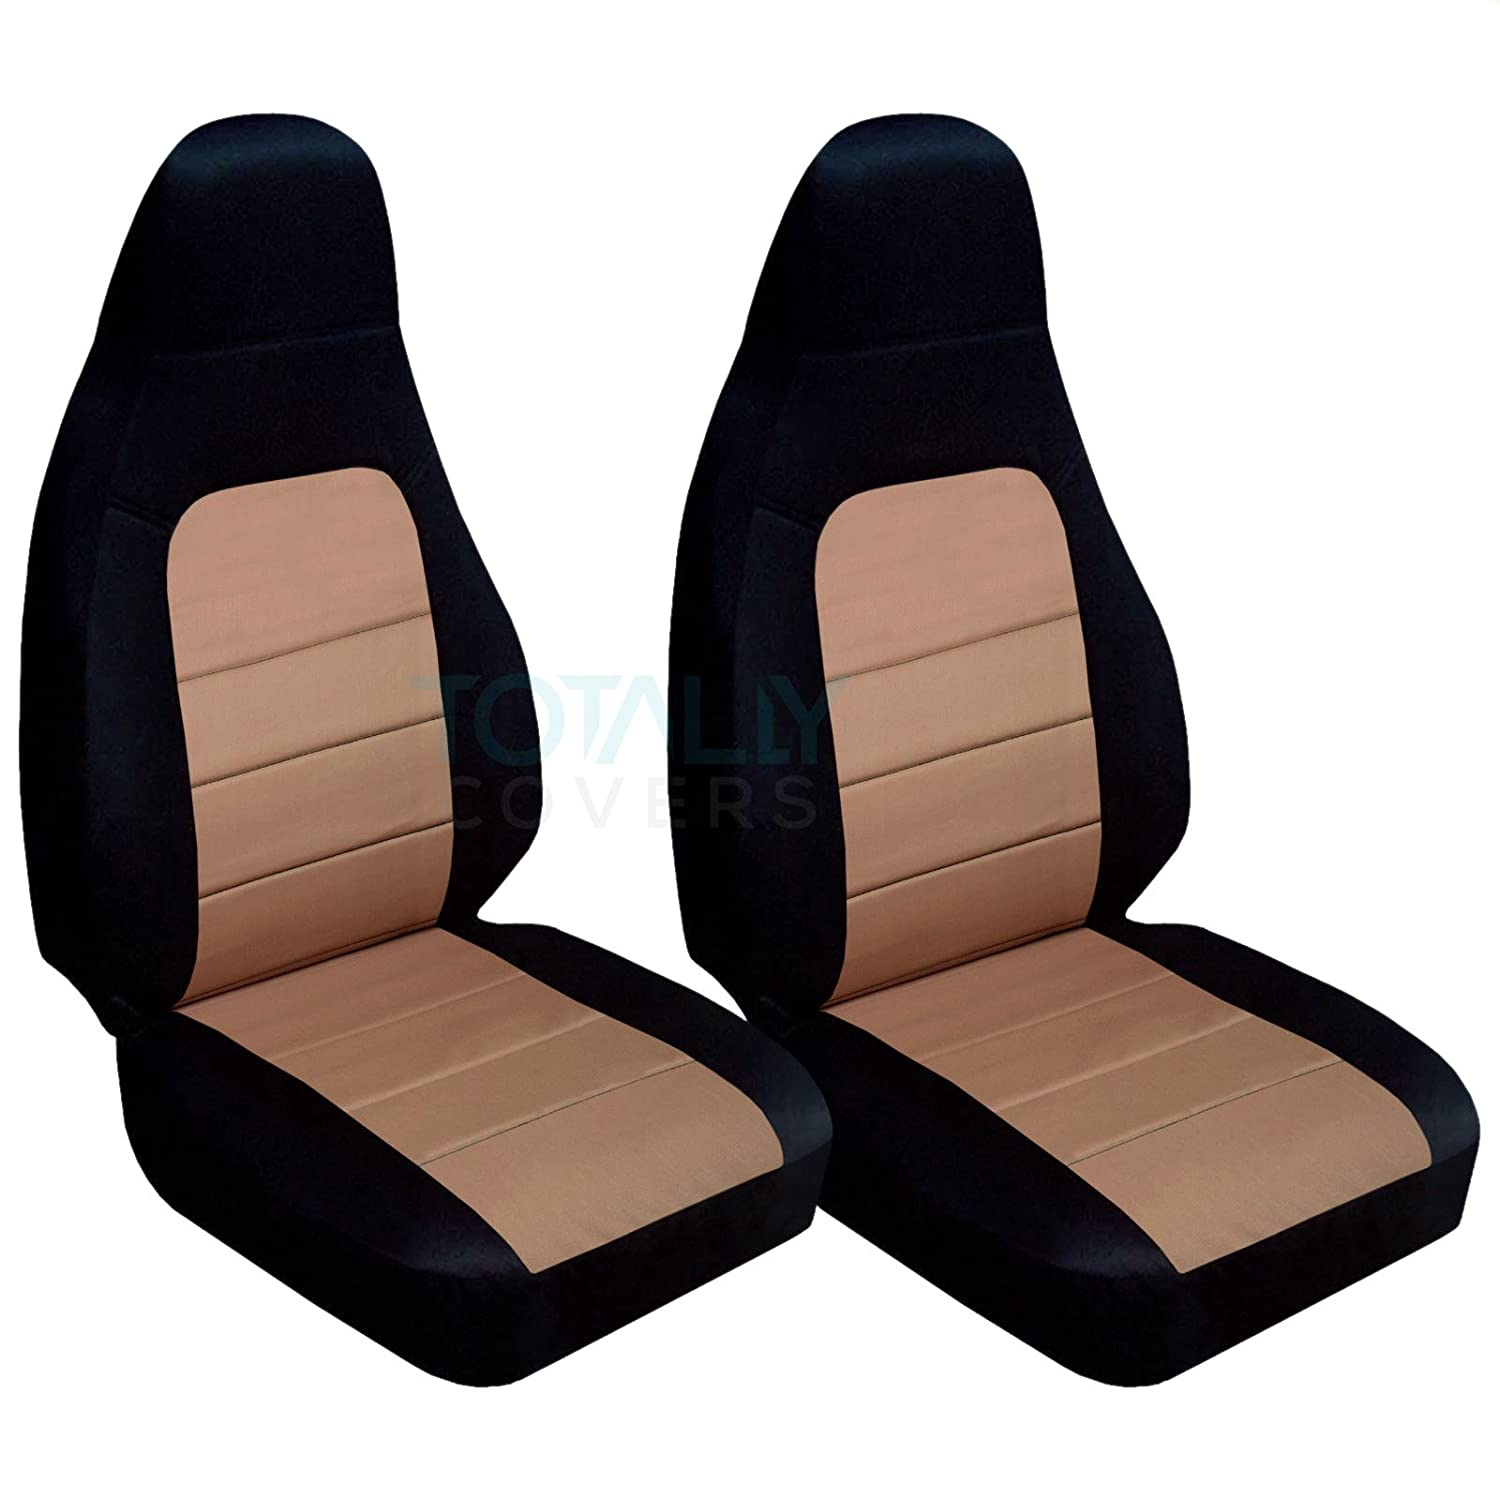 Mazda Miata Seat Covers